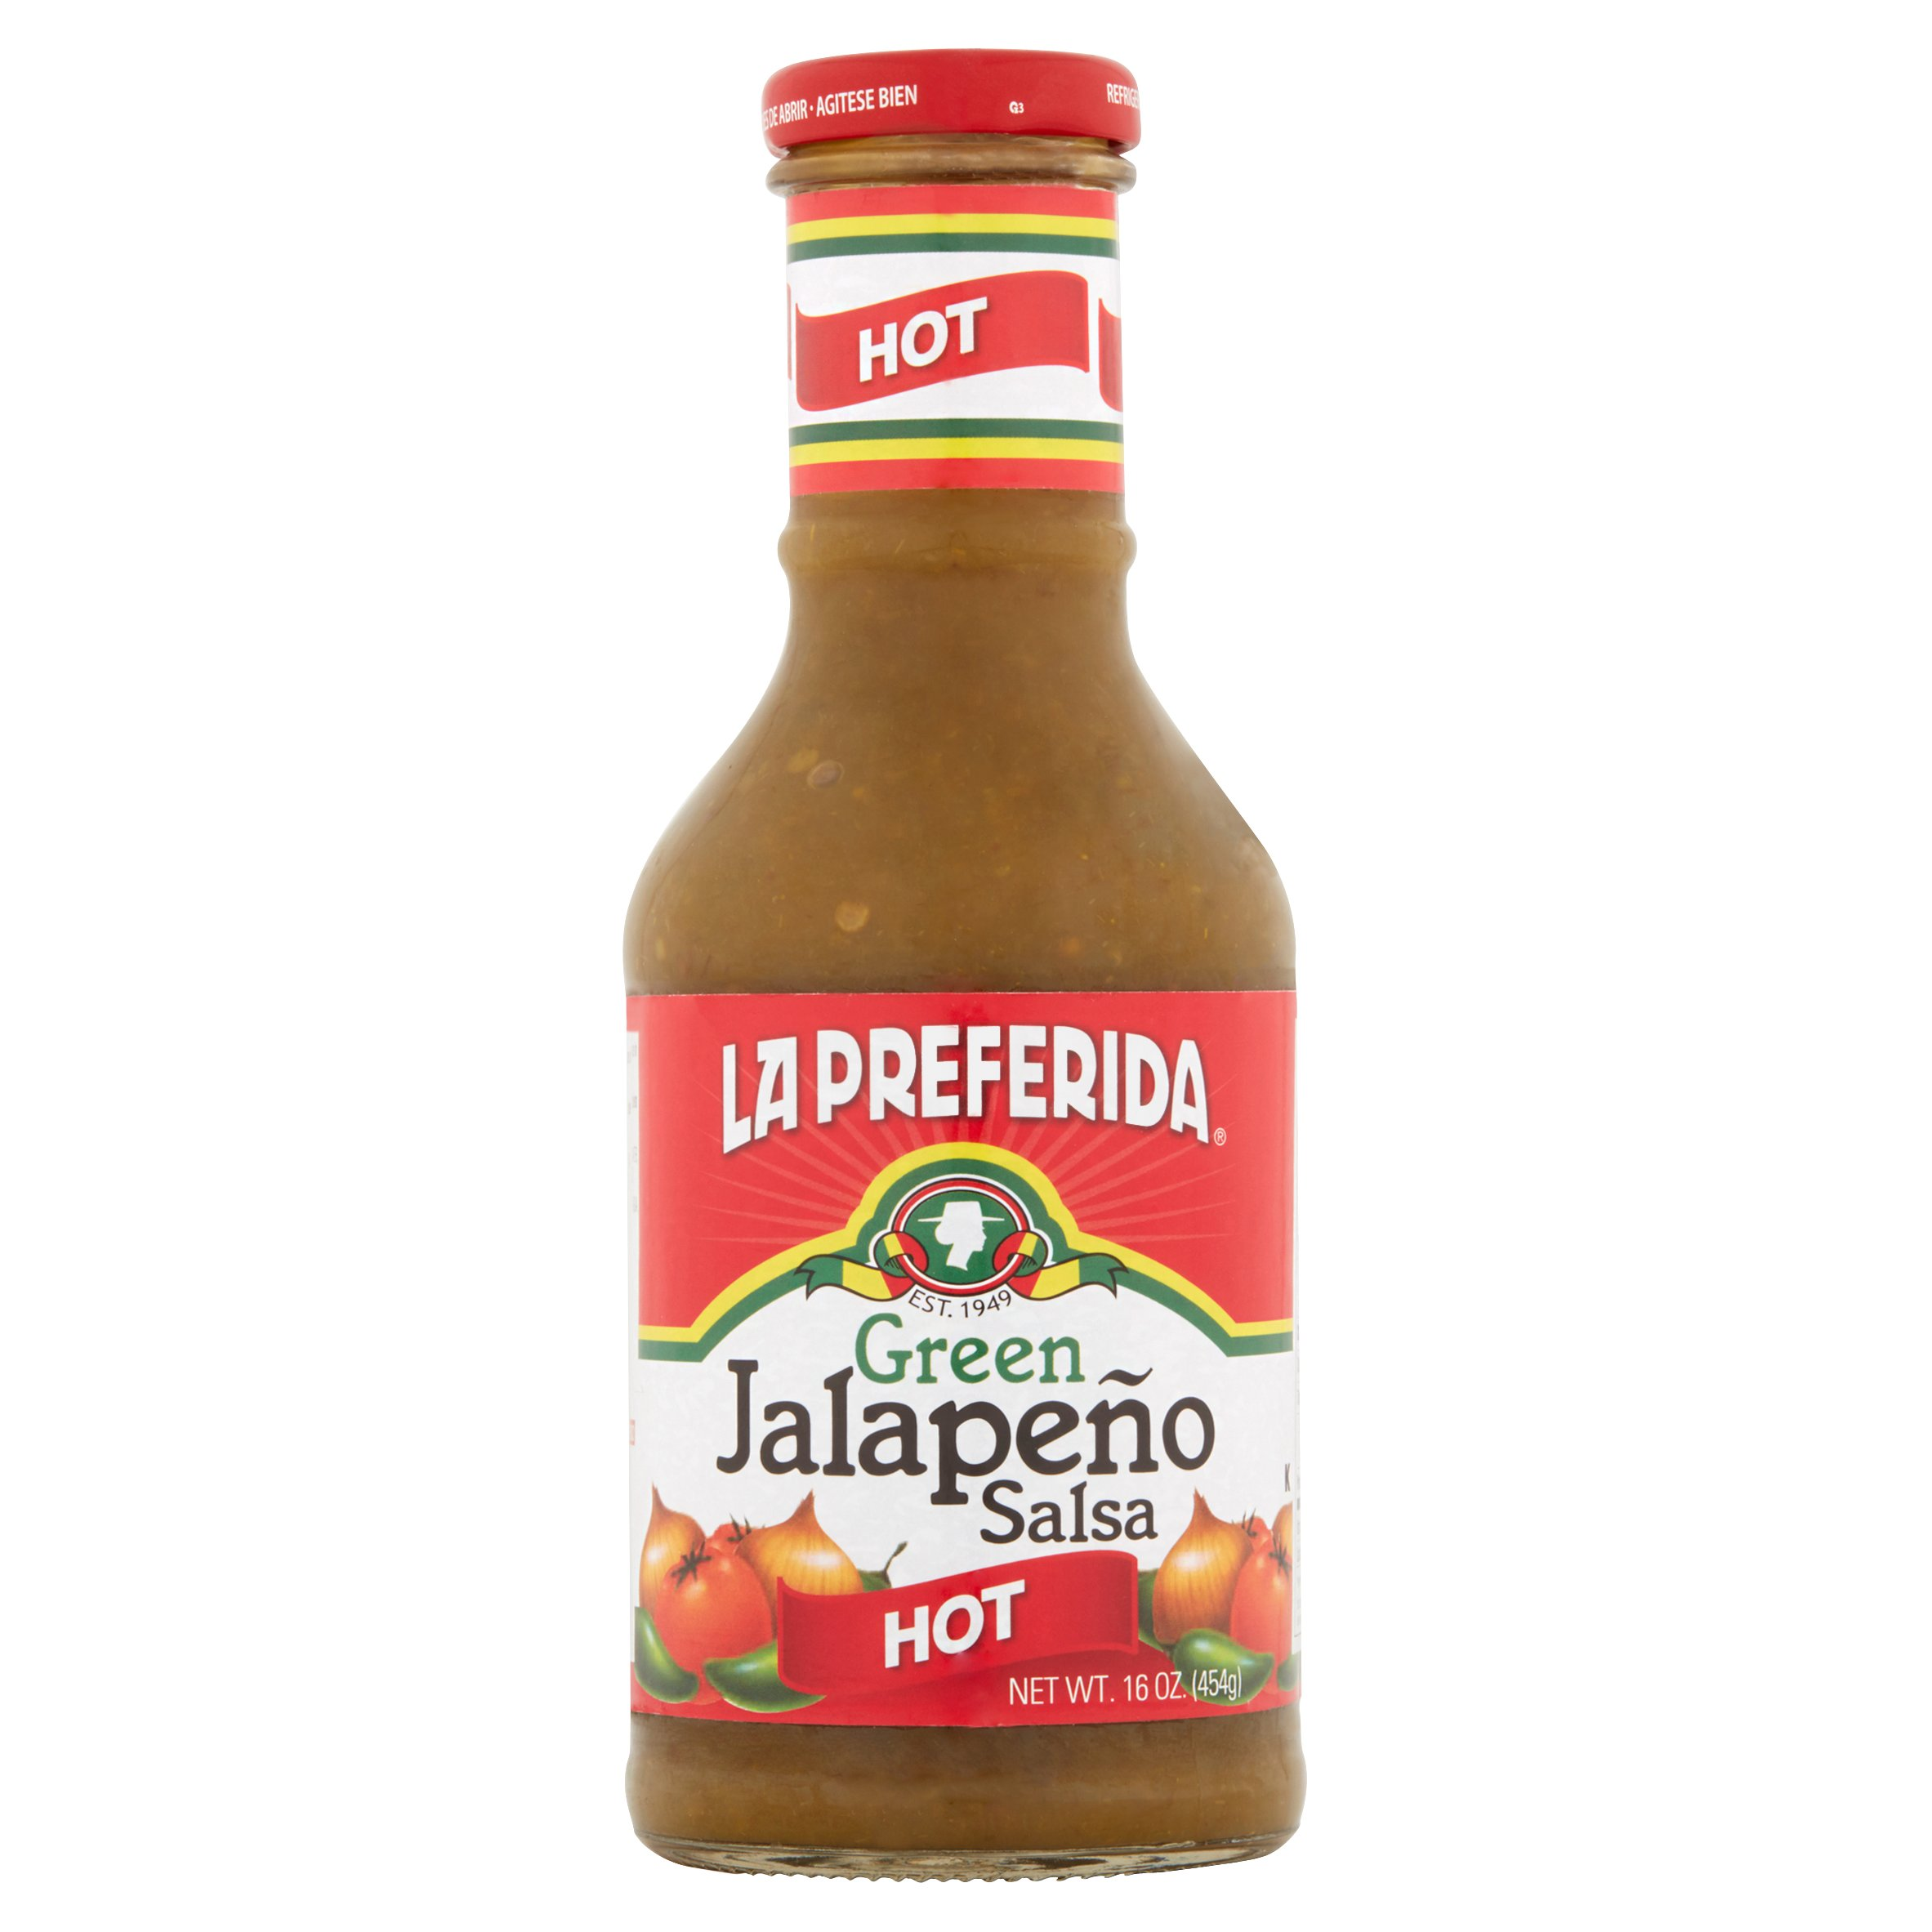 La Preferida Hot Green Jalapeño Salsa, 16 oz